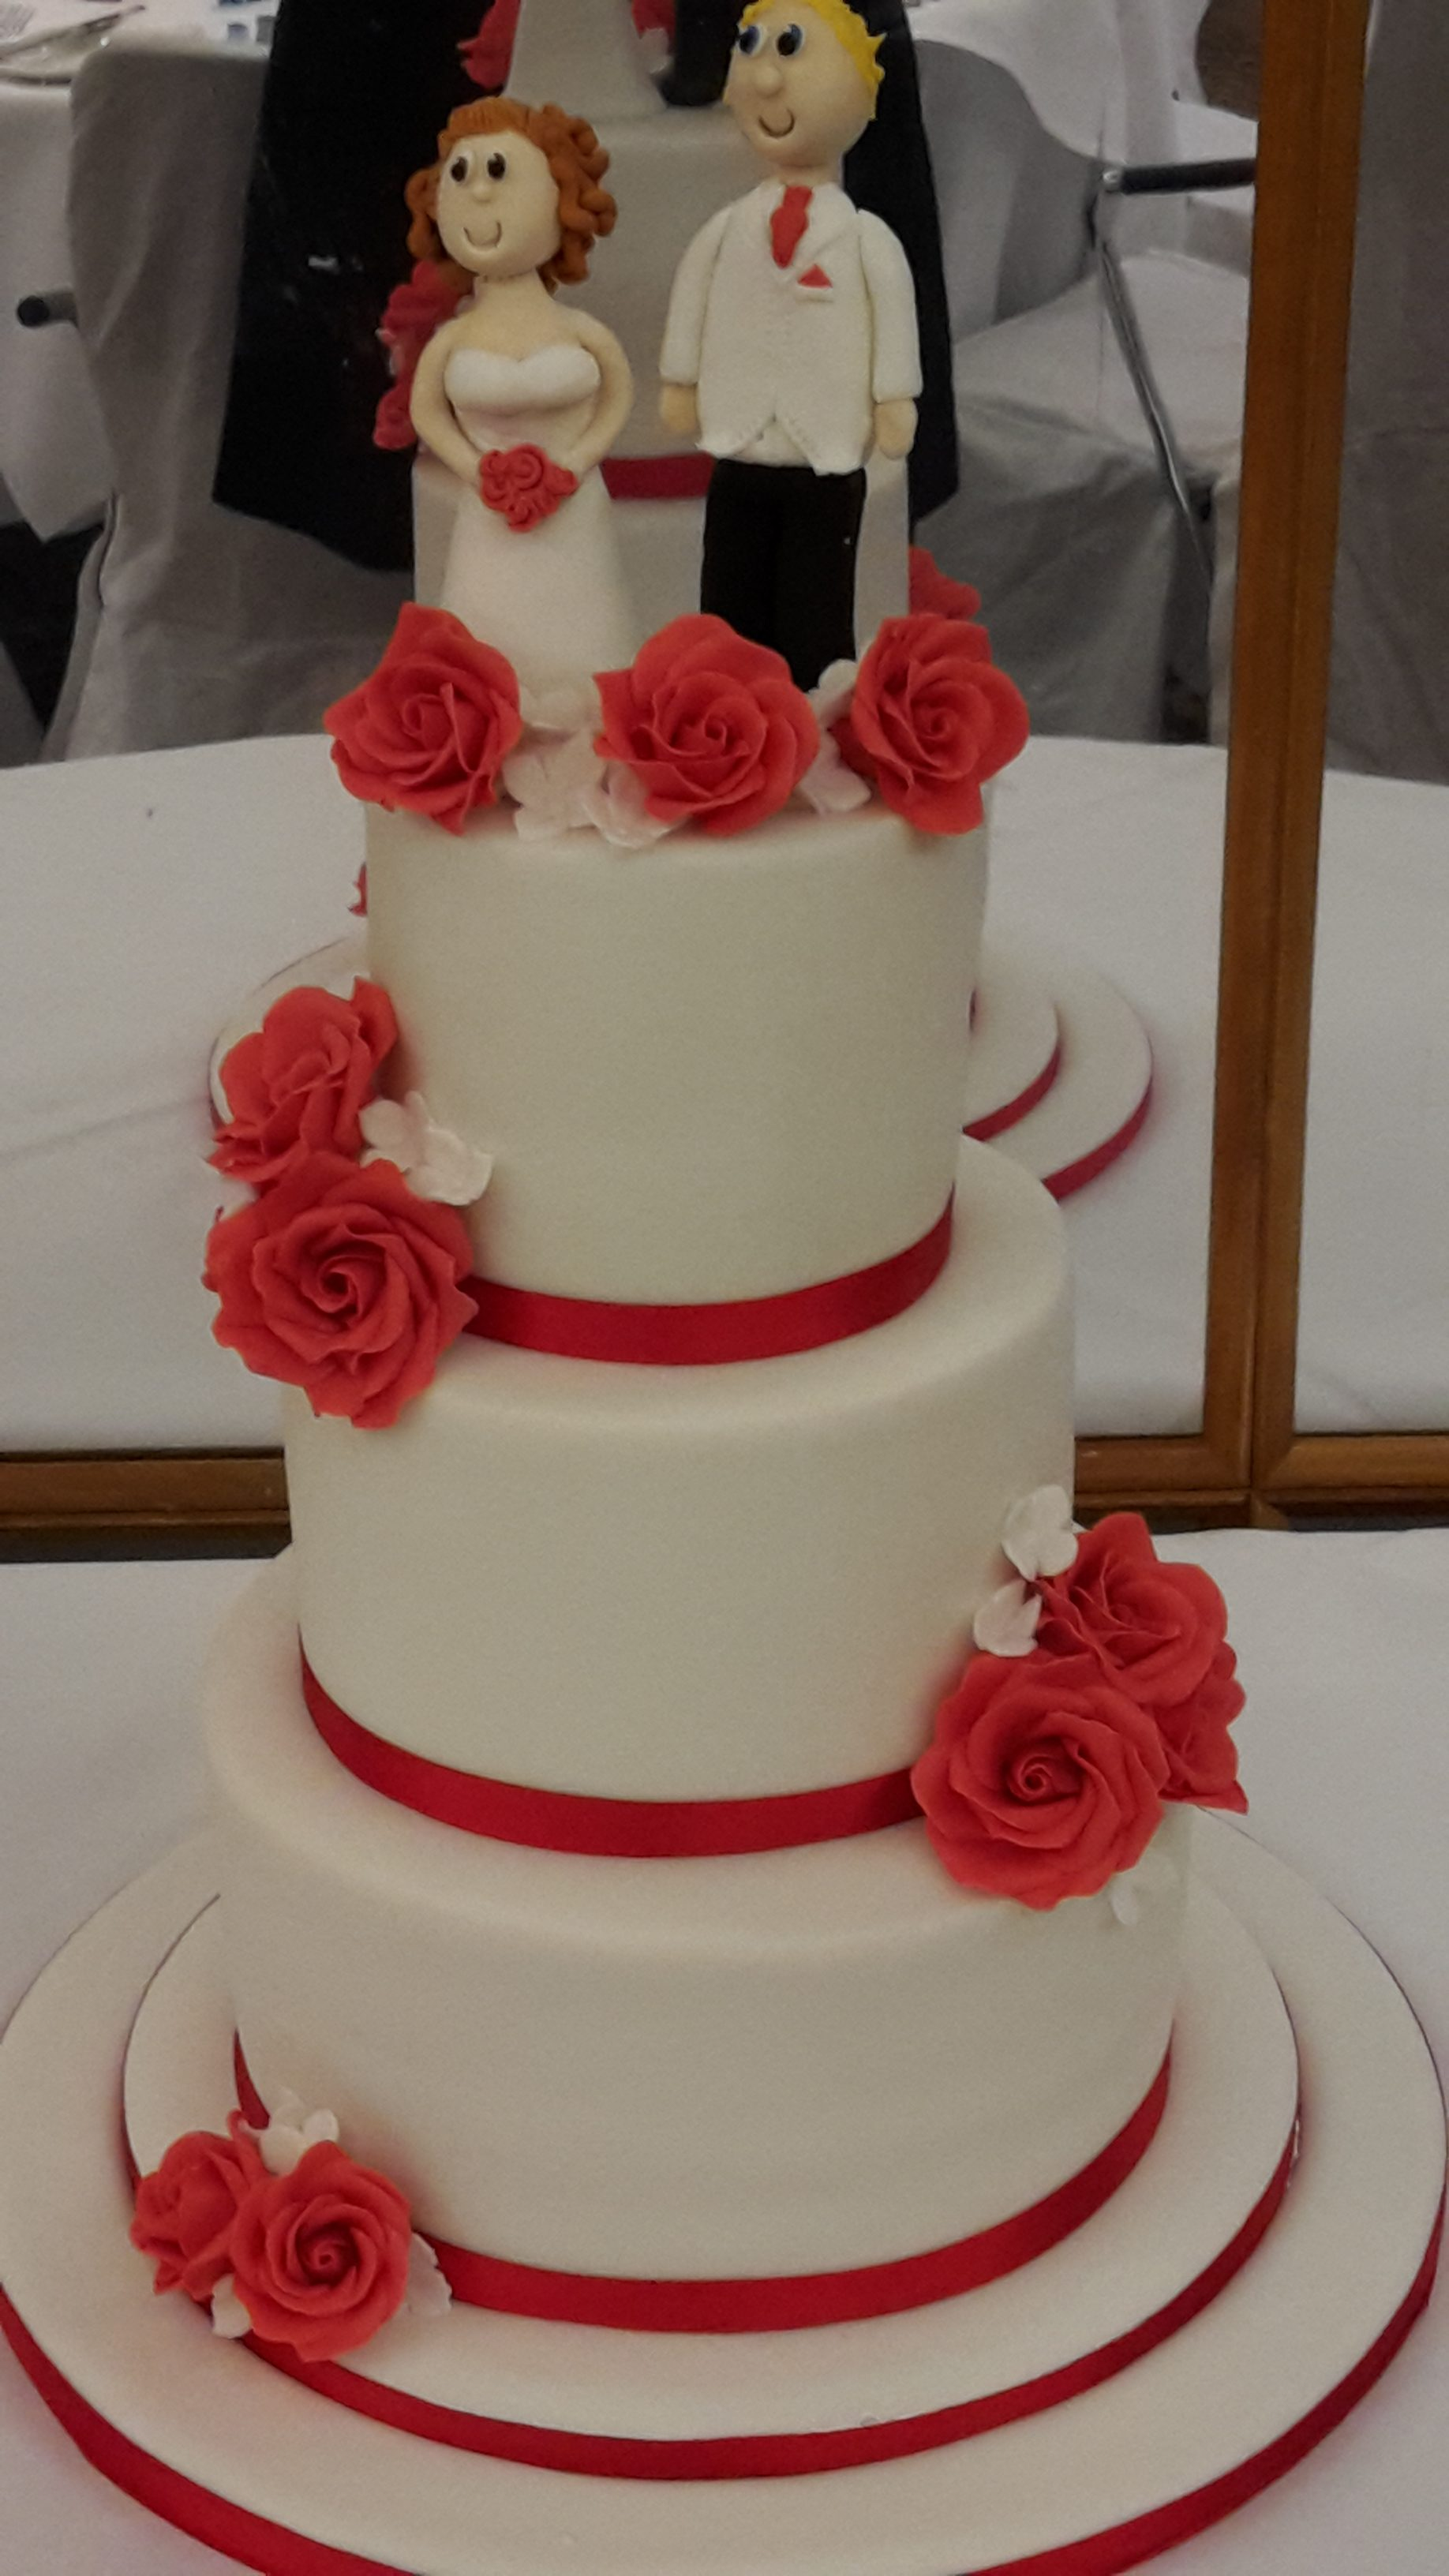 traditional wedding cakes in england wedding cakes enfield wedding cakes 21194